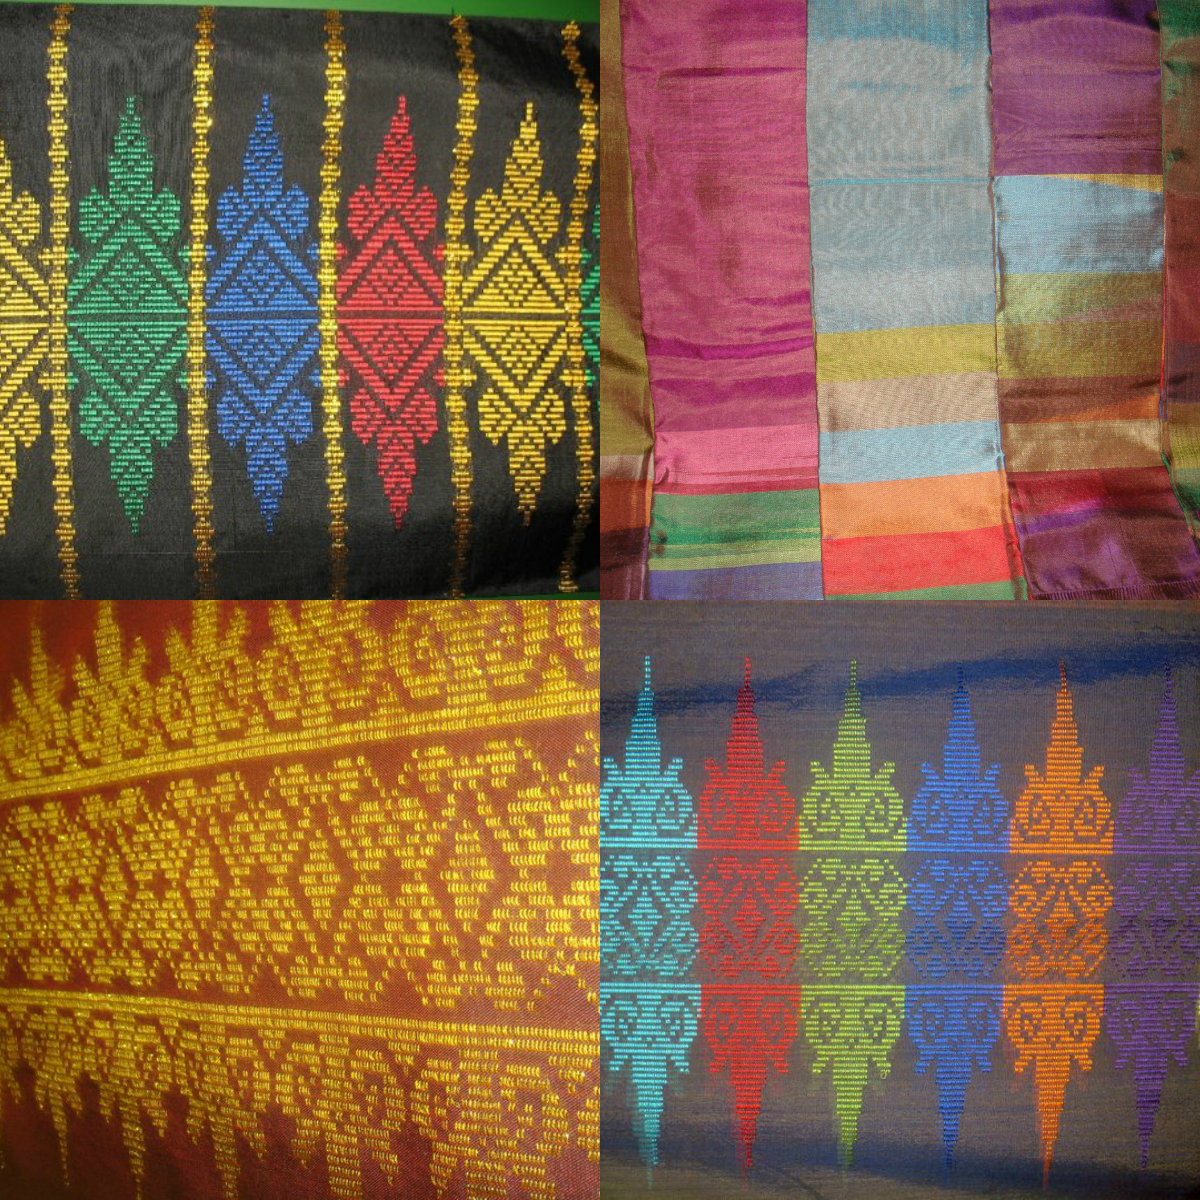 Ginis arts crafts handwoven fabric or textile for Fabric arts and crafts ideas